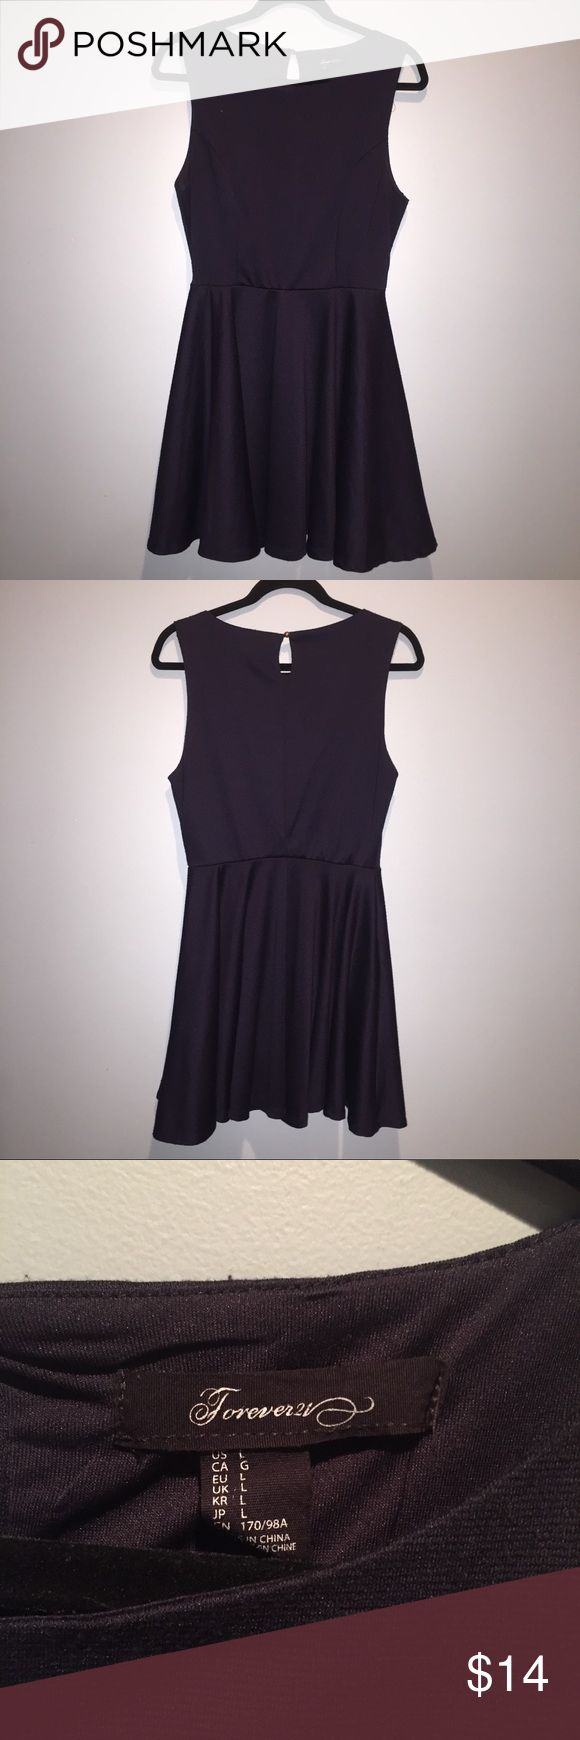 Navy Blue Dress, Forever 21 Navy blue short dress, clinched waist with flowy skirt. Slip on with with button detail. Forever 21, size large. Gently used. Forever 21 Dresses Mini